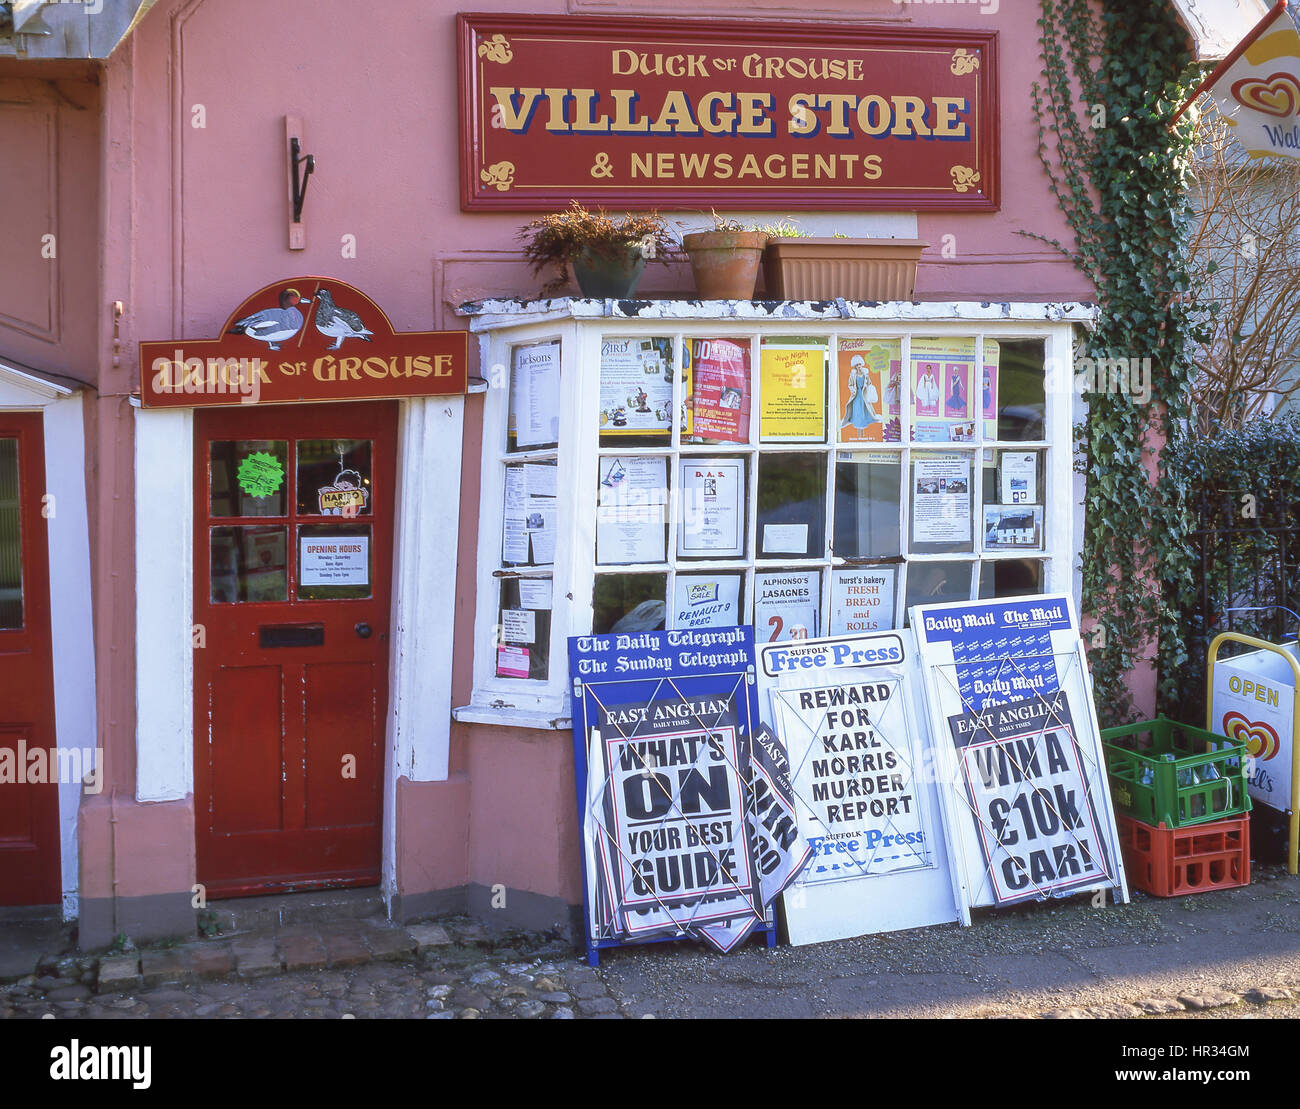 Duck of Grouse Village Store, Cavendish, Suffolk, England, United Kingdom - Stock Image